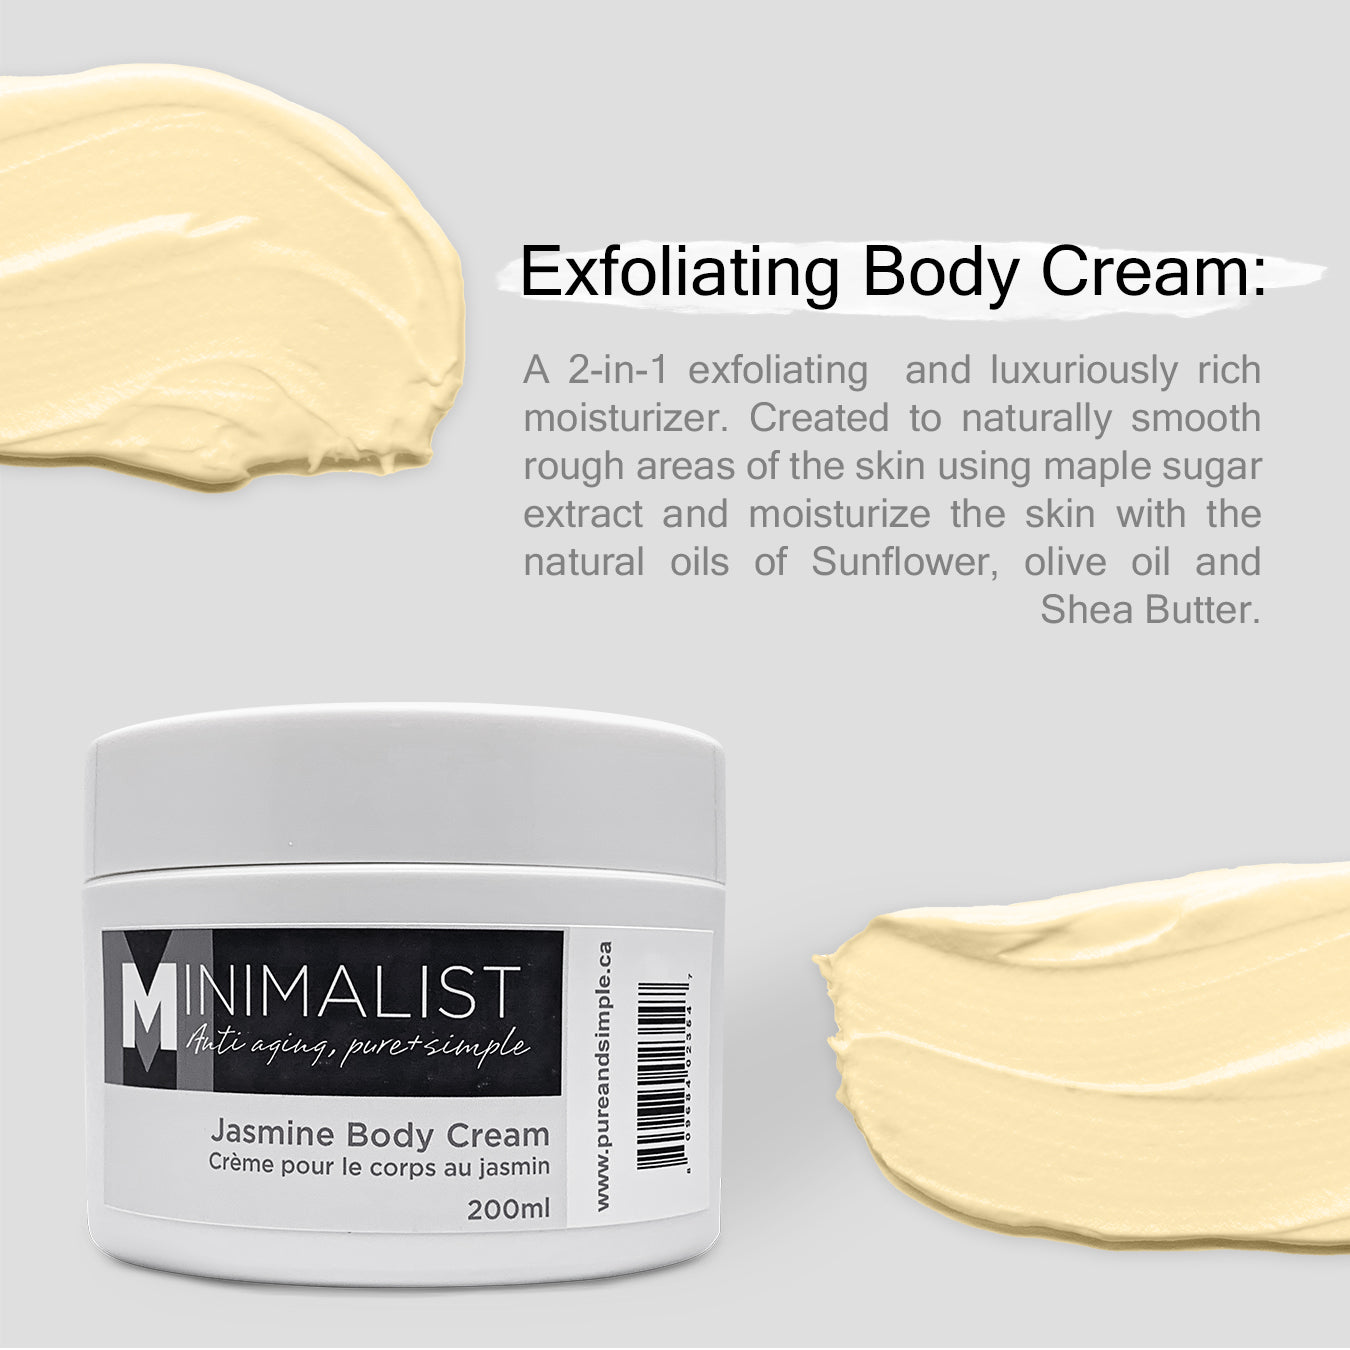 Exfoliating Body Cream